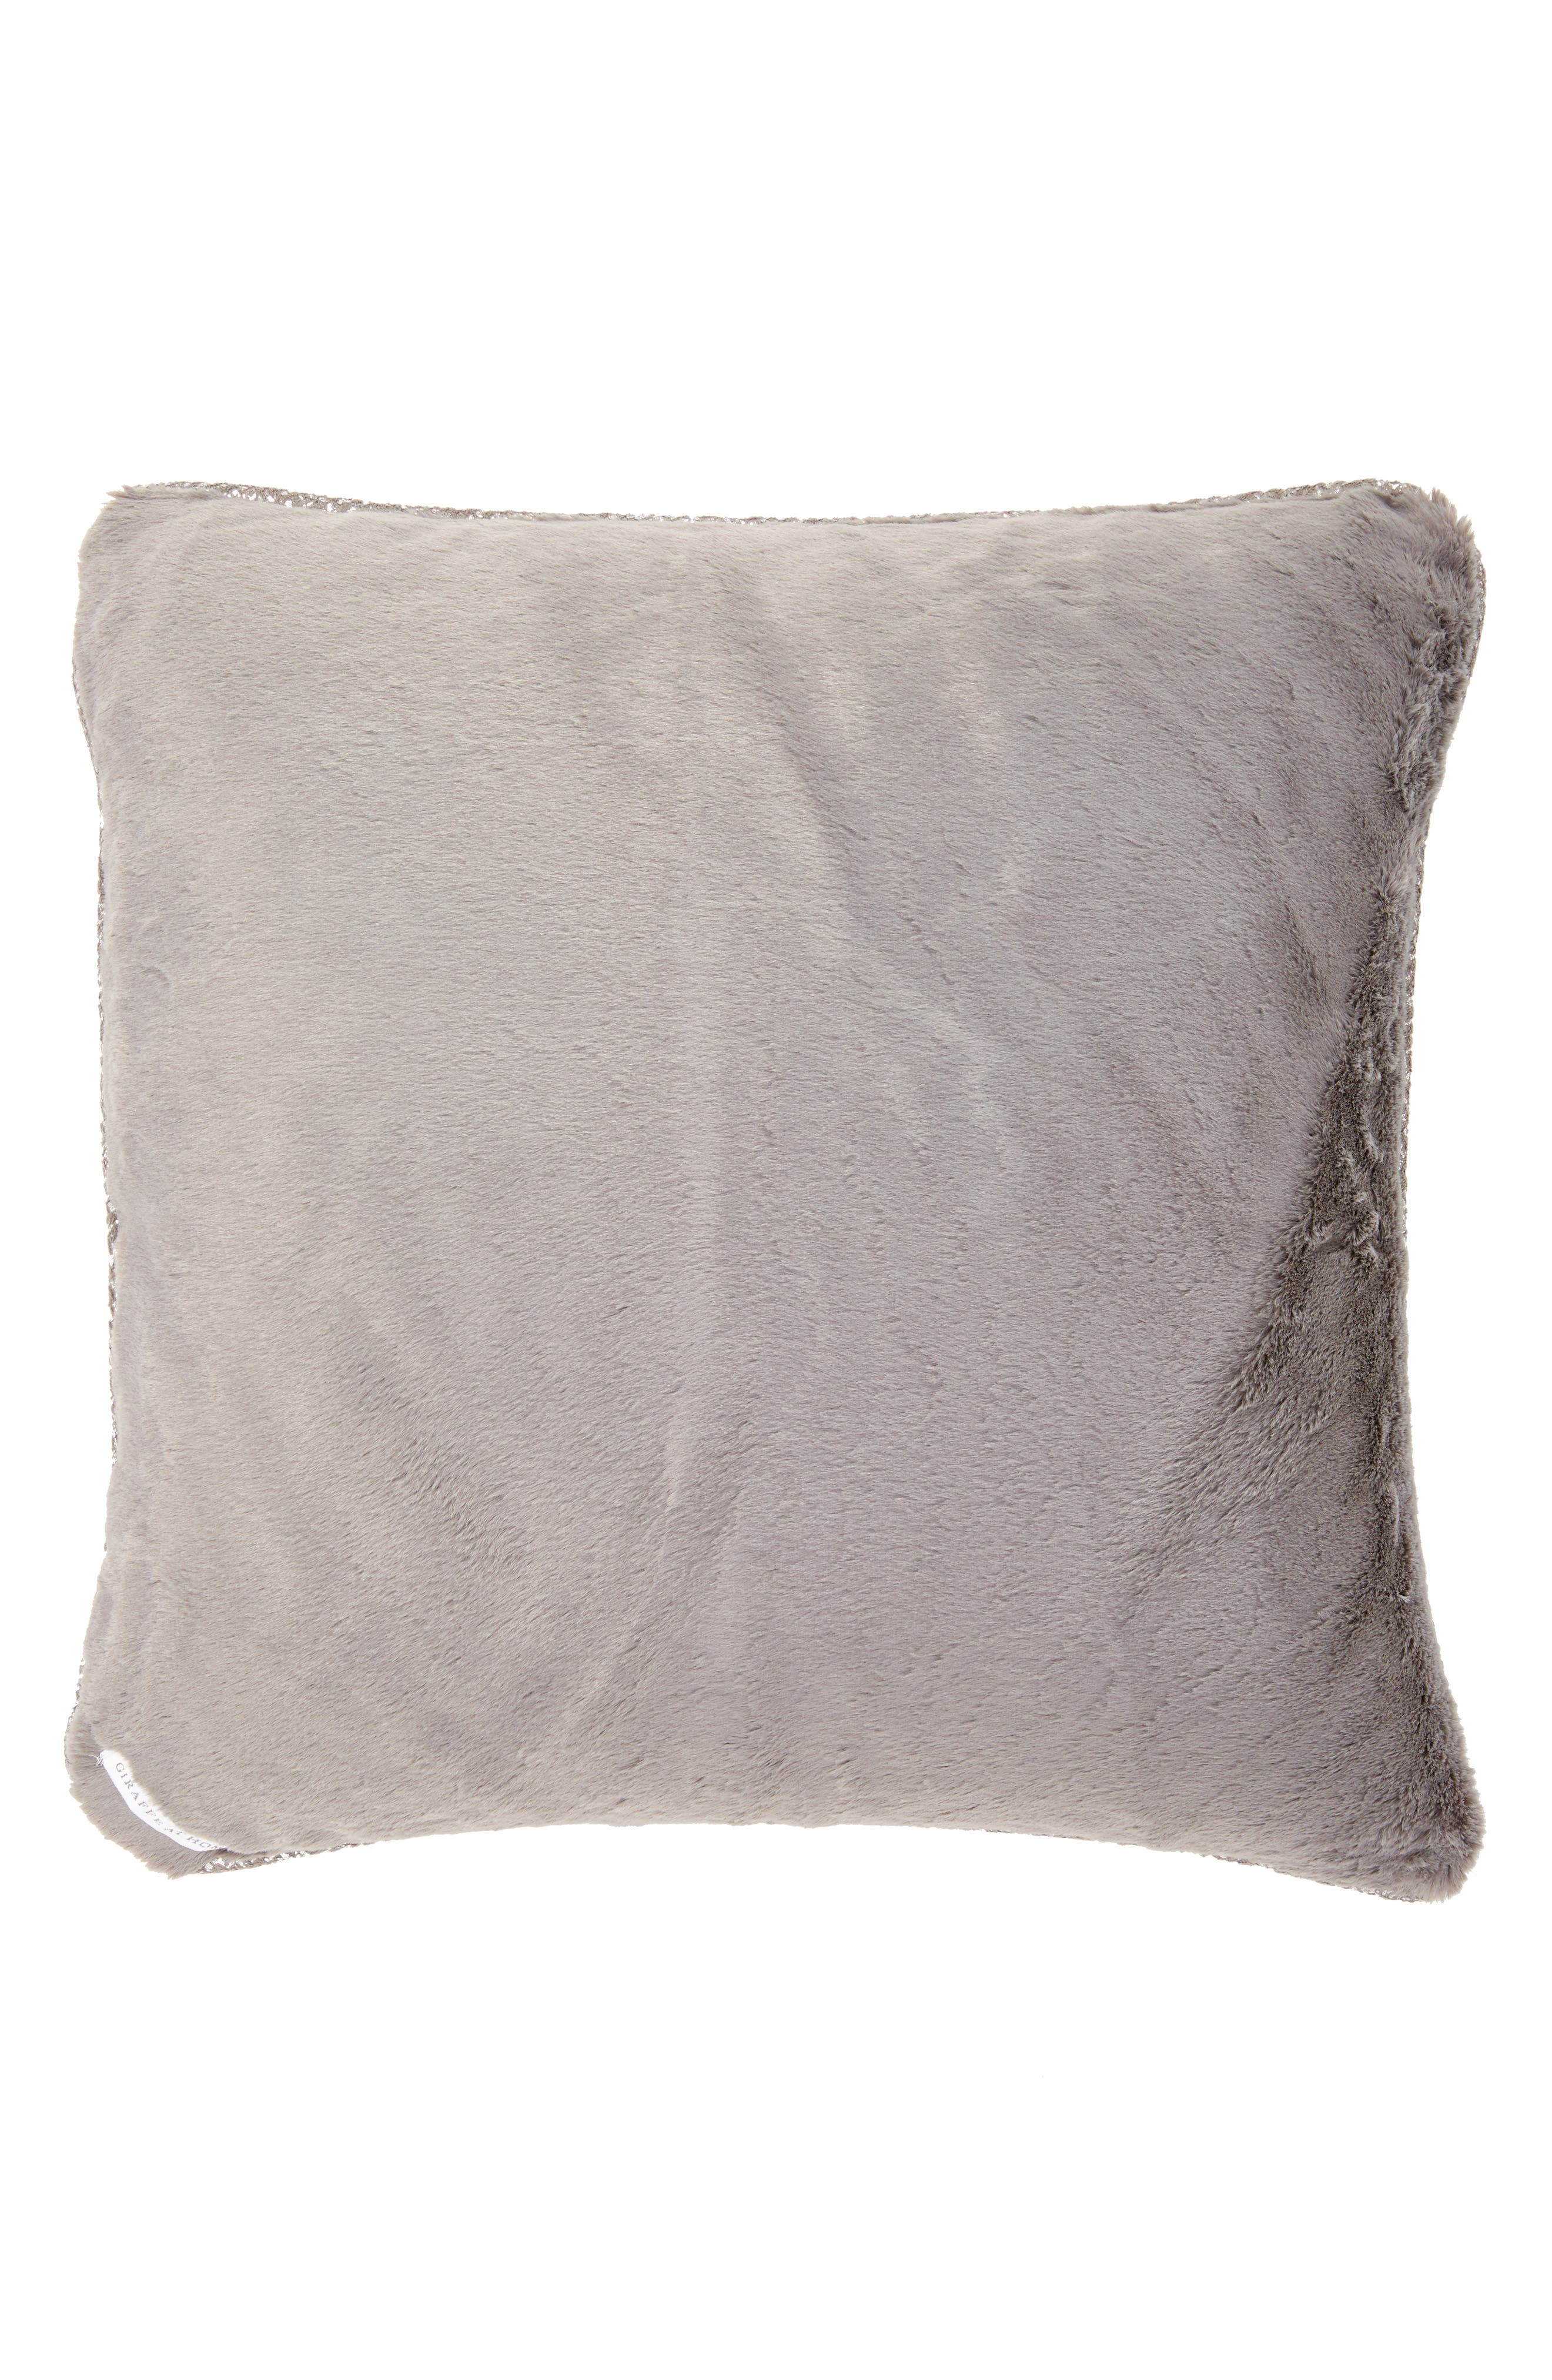 Luxe<sup>™</sup> Lustre Pillow,                             Main thumbnail 1, color,                             CHARCOAL